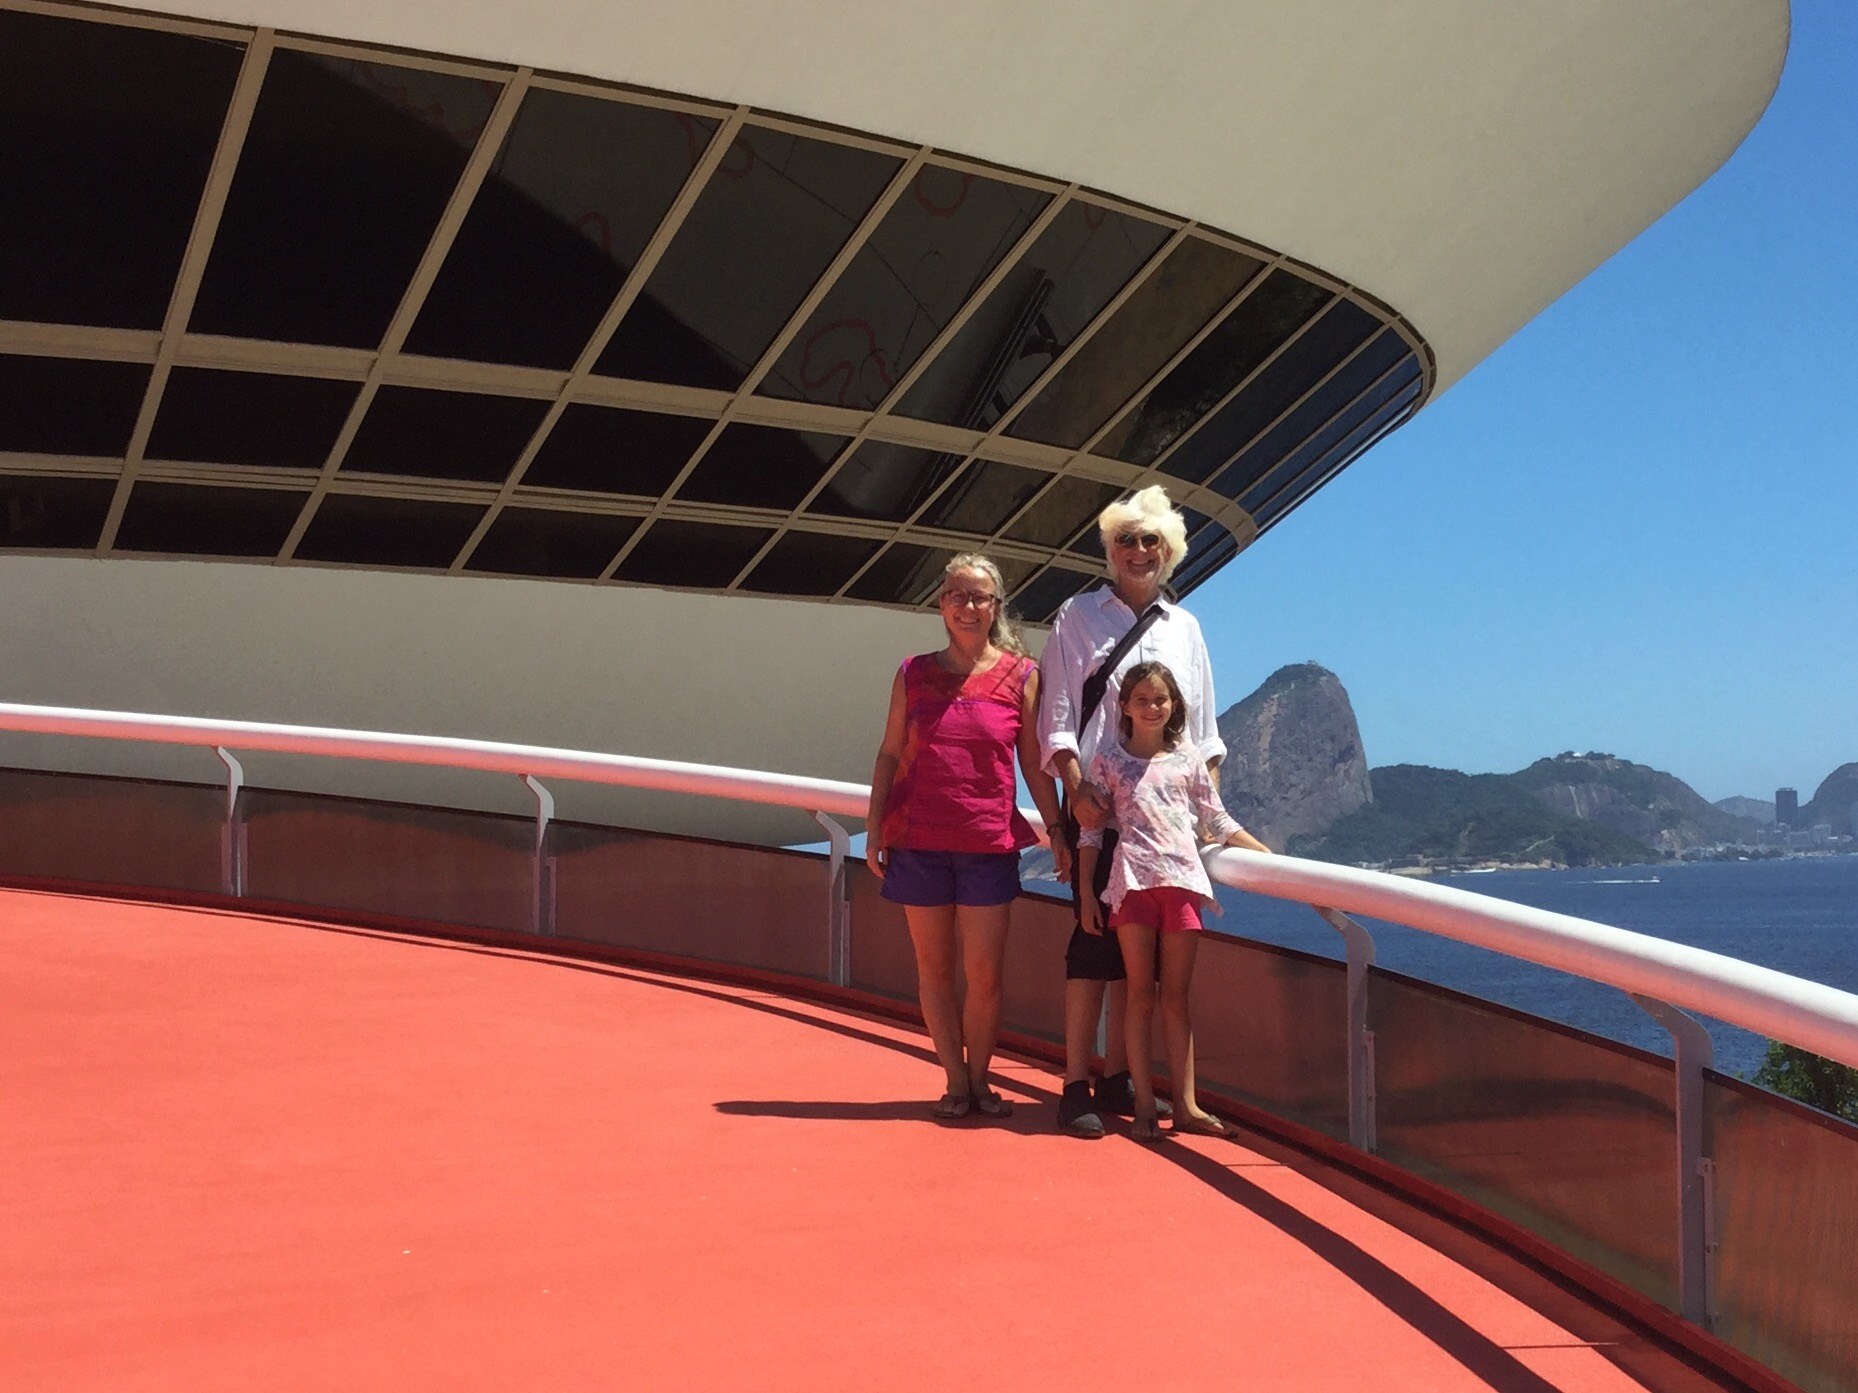 Happy tourist family for Canada. Lili kept thinking how great the ramps would be for her waveboard!